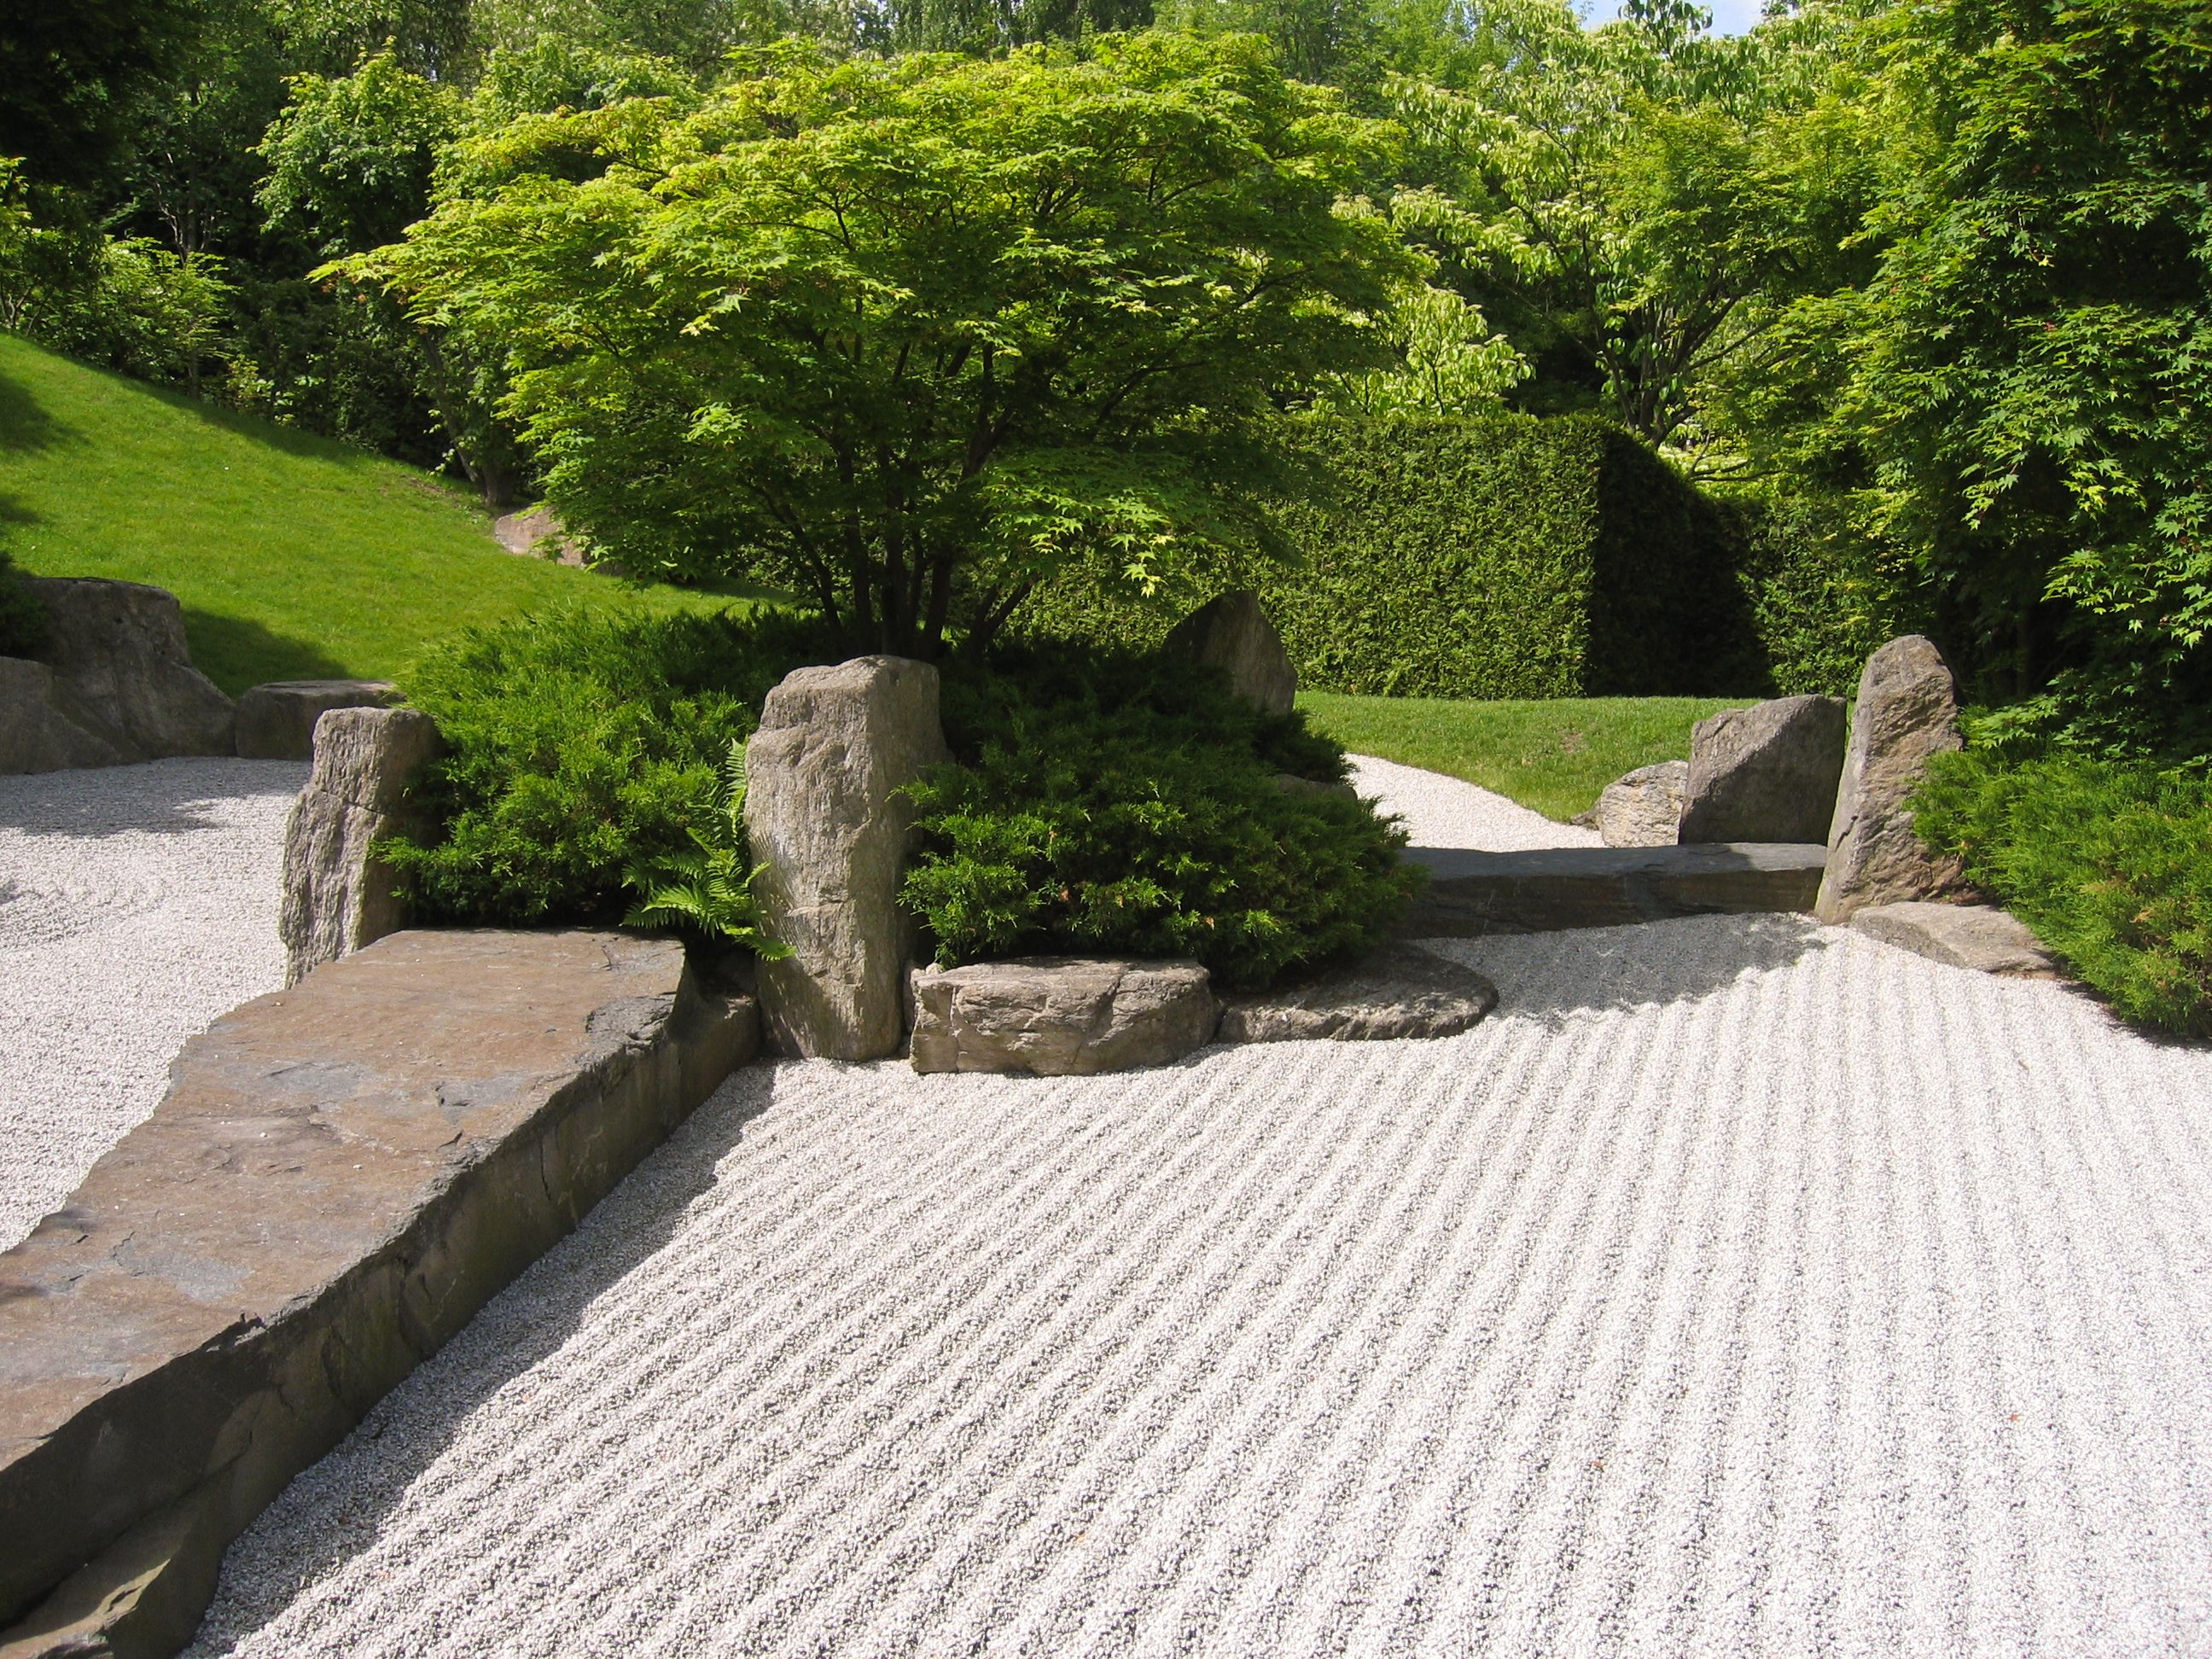 176 Best Landscape Architecture Images On Pinterest Landscaping - chinese garden design is akin to